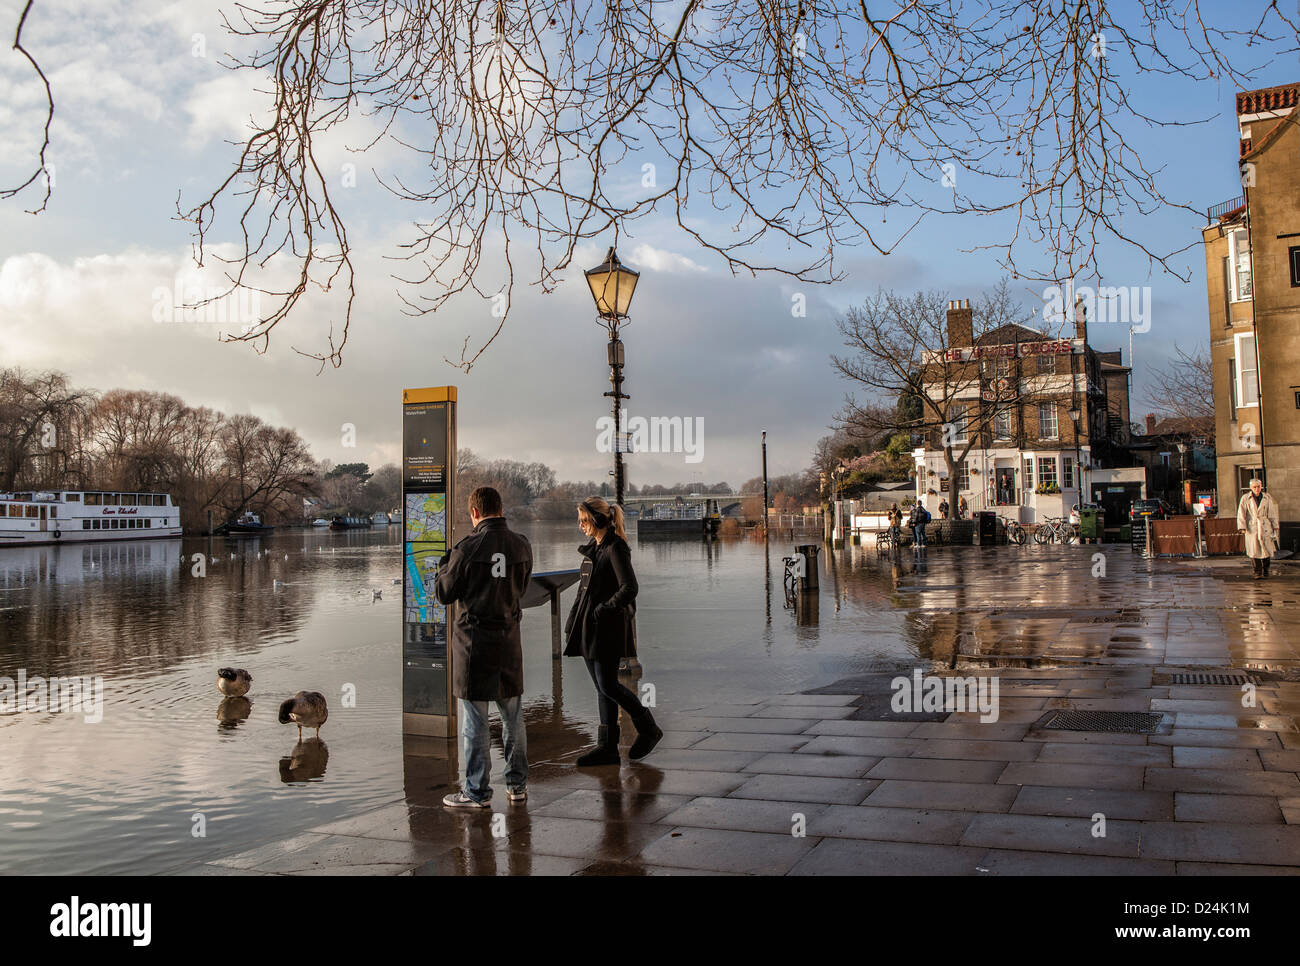 A man and a woman watch the rising water of the Thames river at high tide - Richmond upon Thames, Surrey - Stock Image